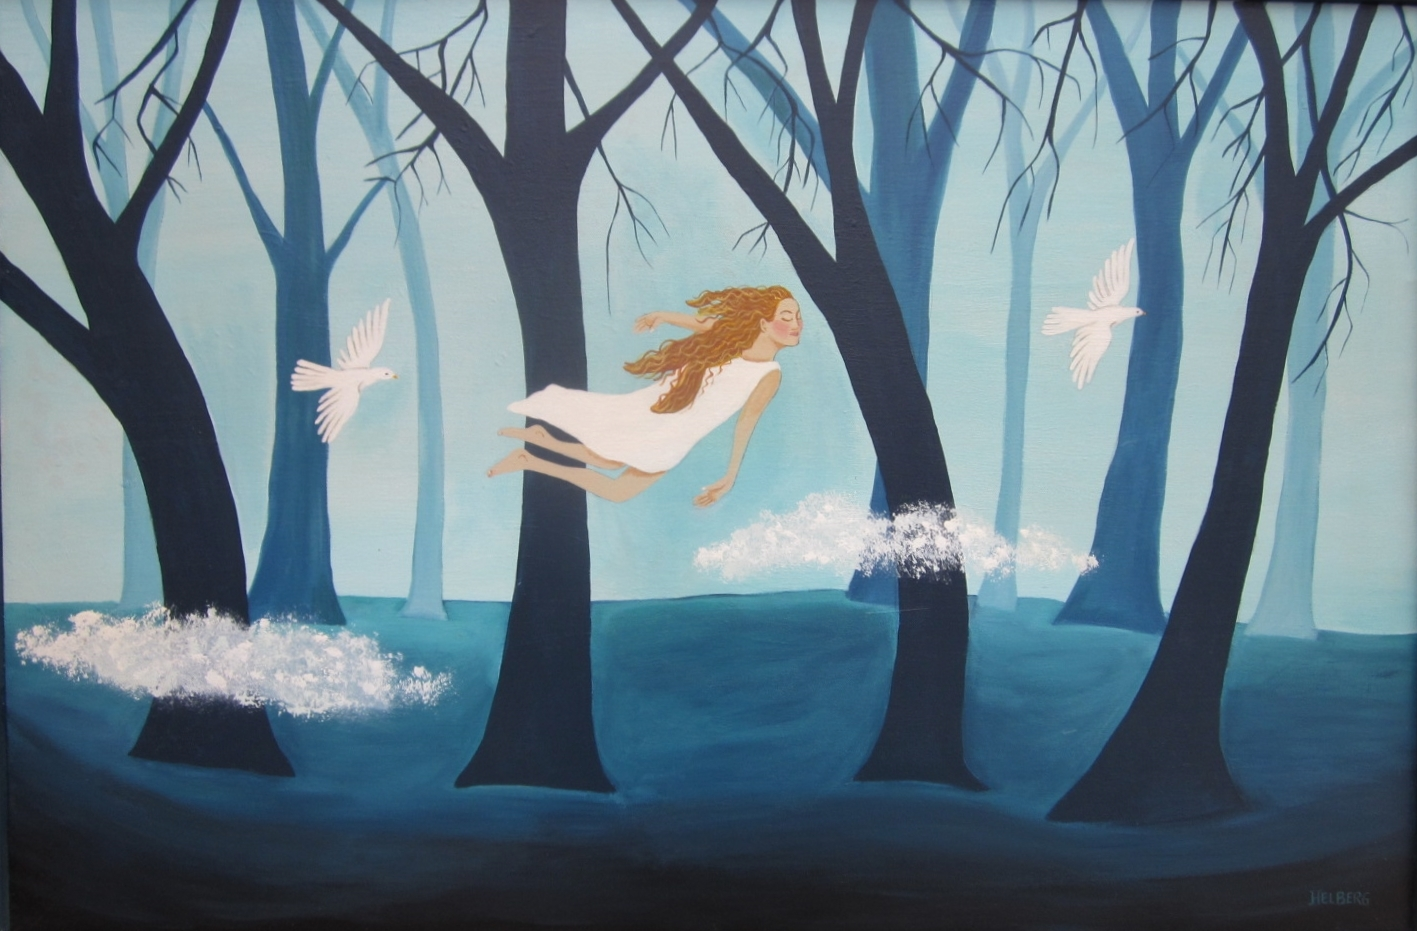 A dream scene of a woman flying her her sleep with white doves.